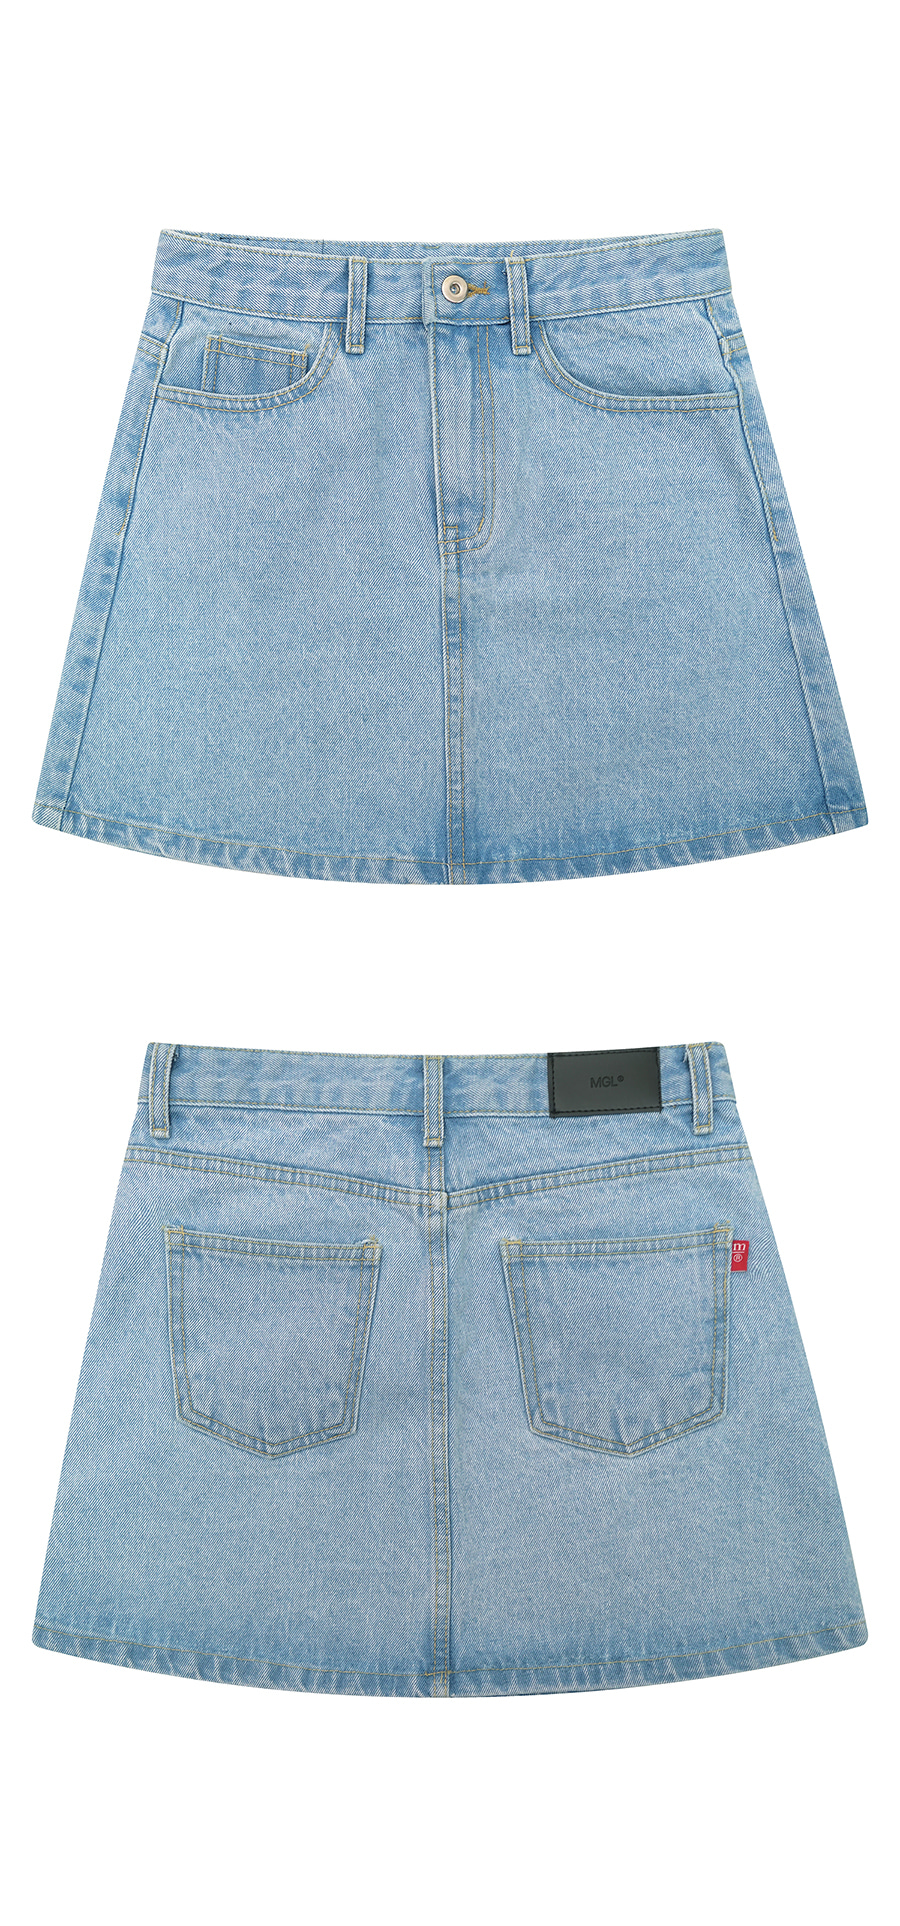 매치글로브(MATCHGLOBE) MG9S DENIM BASIC MINI SKIRT (LIGHT BLUE)